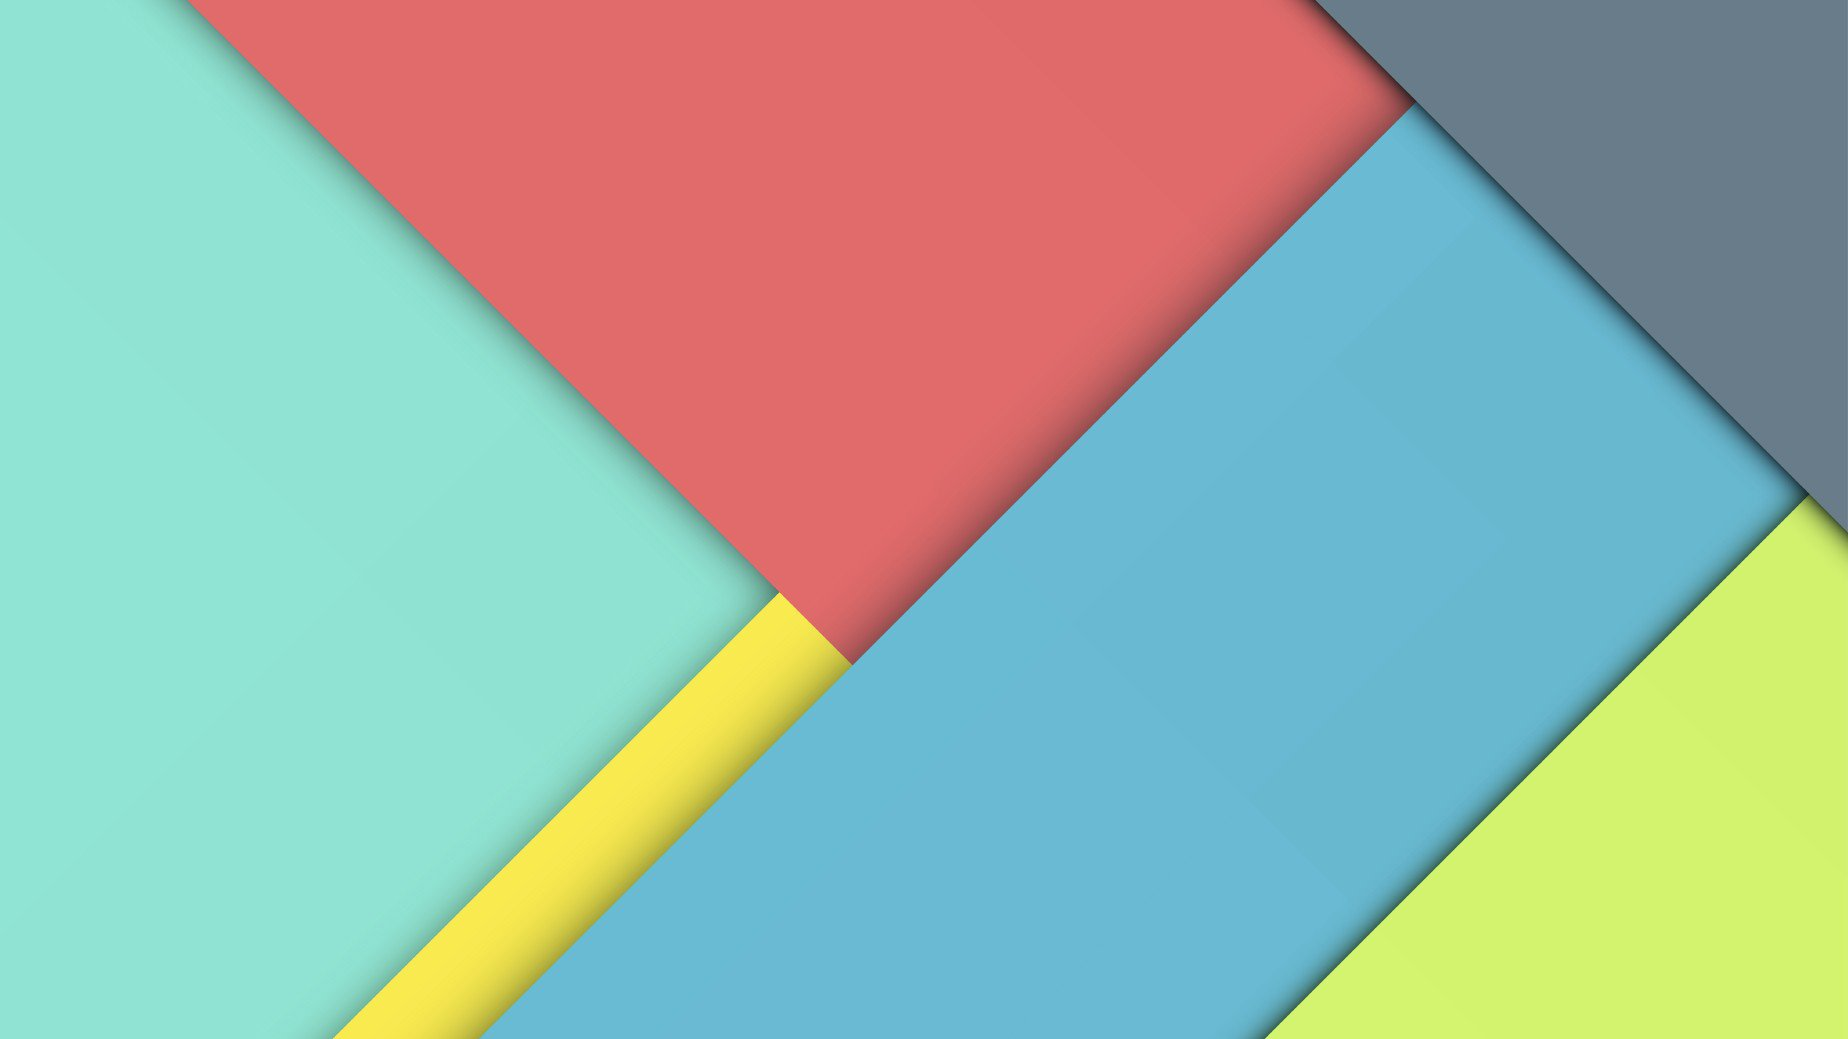 1366x768 material design hd 1366x768 resolution hd 4k for Material design wallpaper 4k